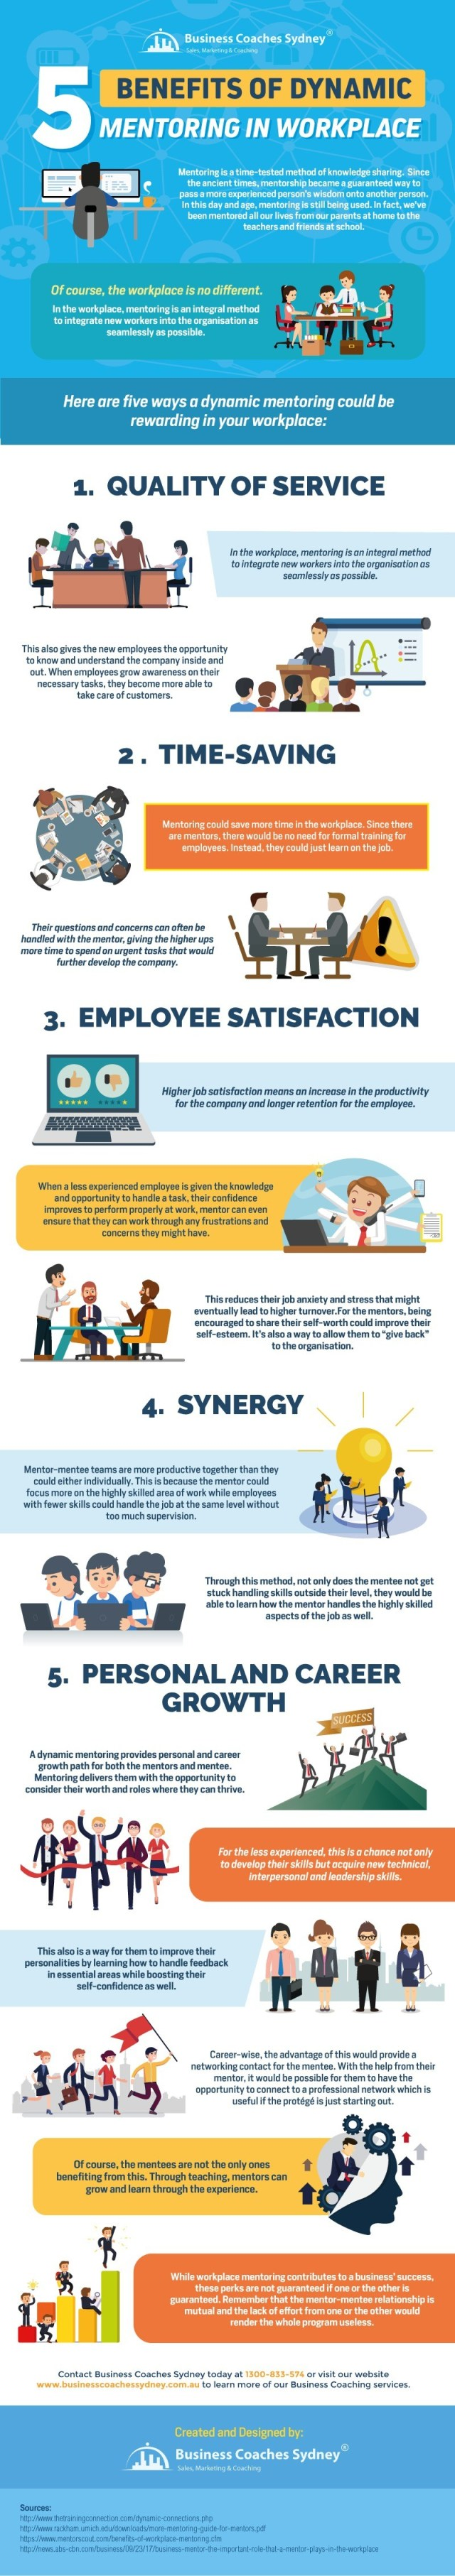 Benefits Of Dynamic Mentoring In The Workplace - MyStartupLand